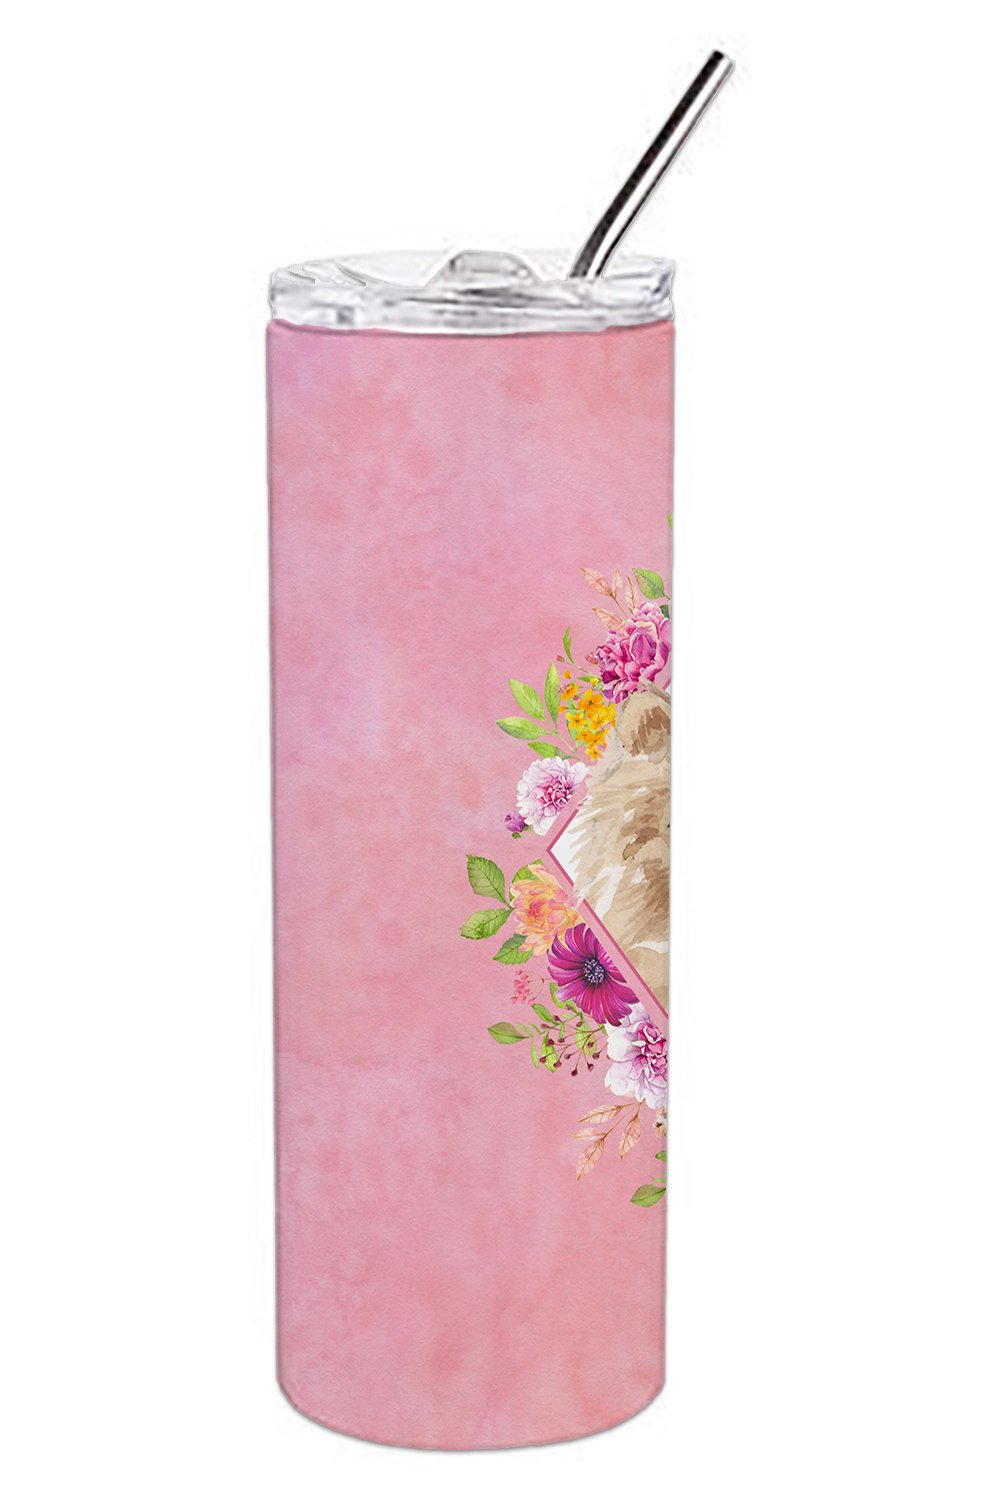 Pomeranian Pink Flowers Double Walled Stainless Steel 20 oz Skinny Tumbler CK4219TBL20 by Caroline's Treasures